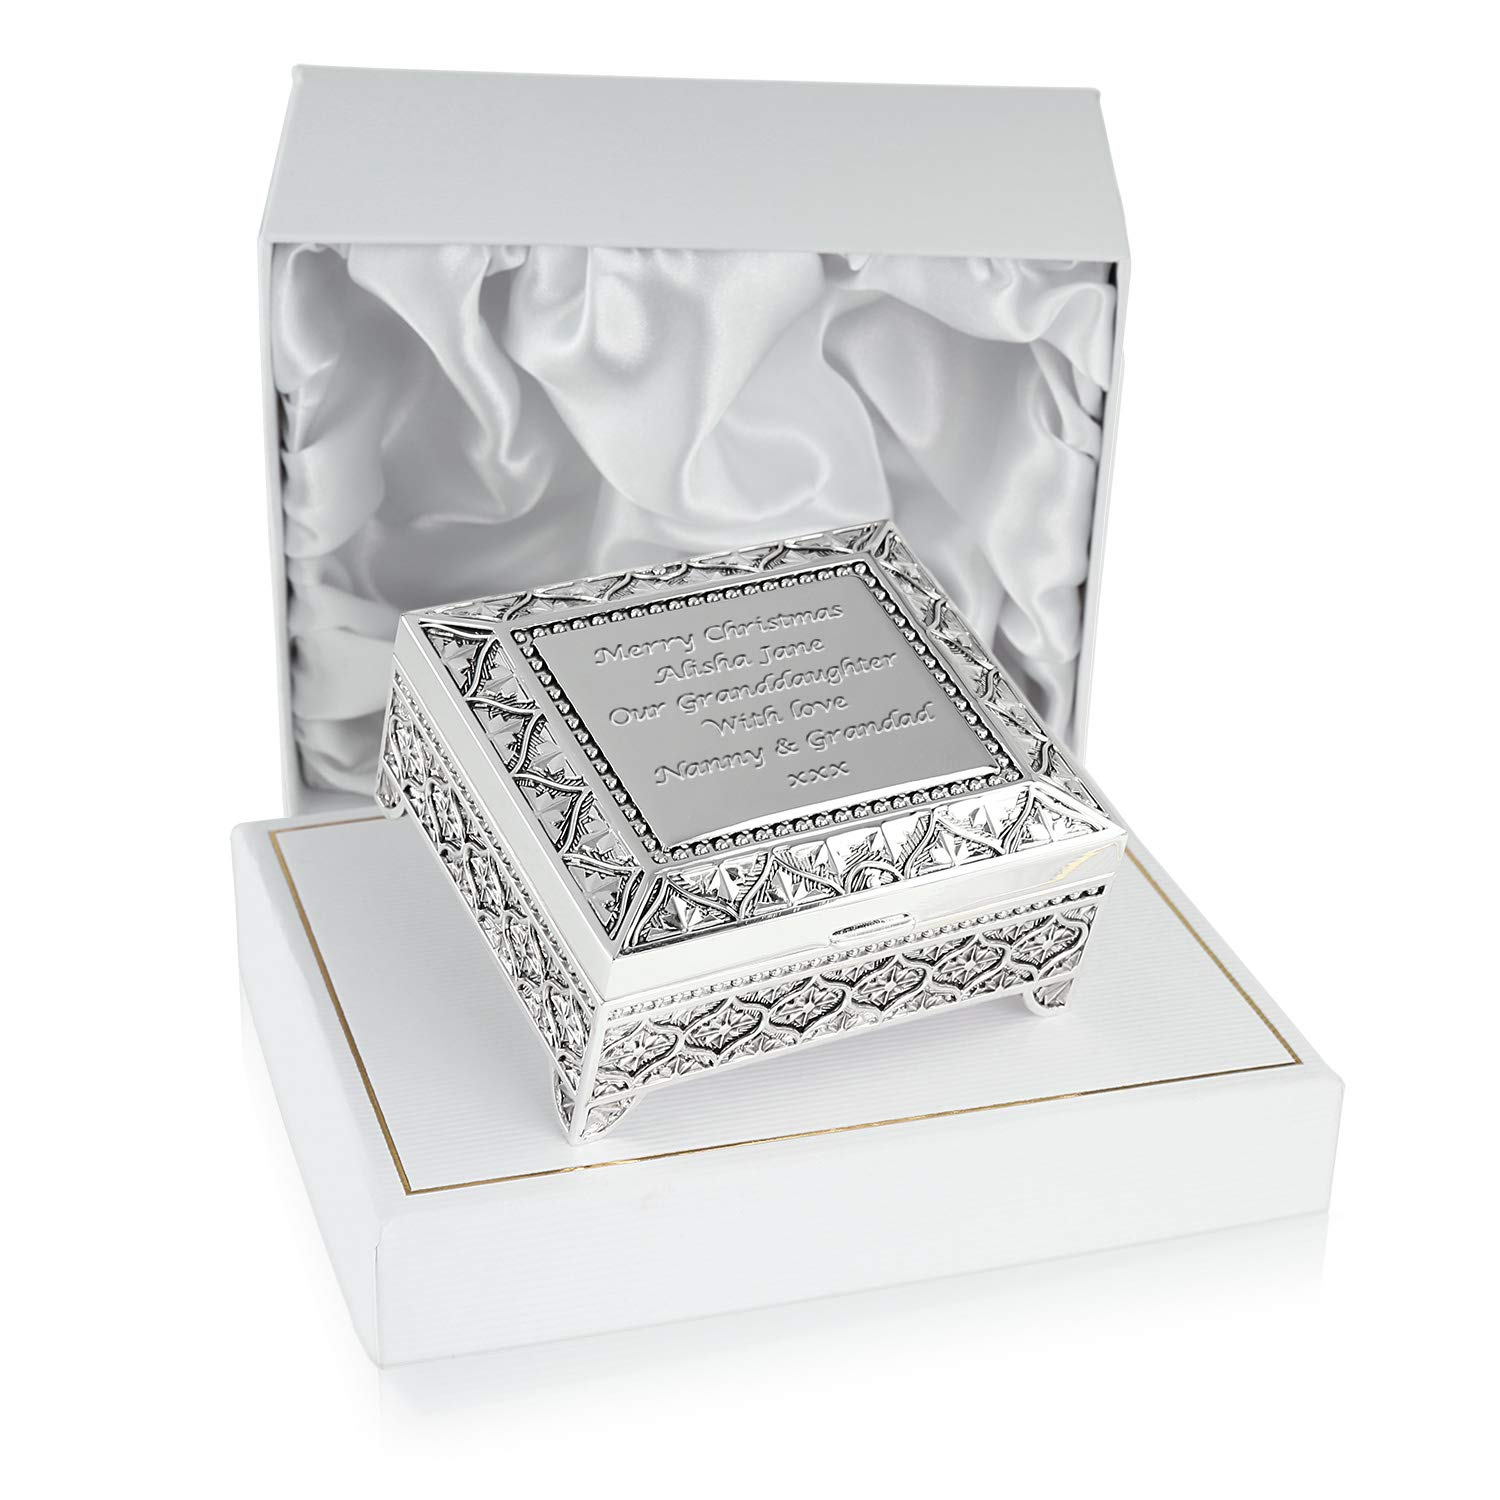 Granddaughter Gifts Engraved Silver Plated Trinket Box With Gift Box Grand Daughter